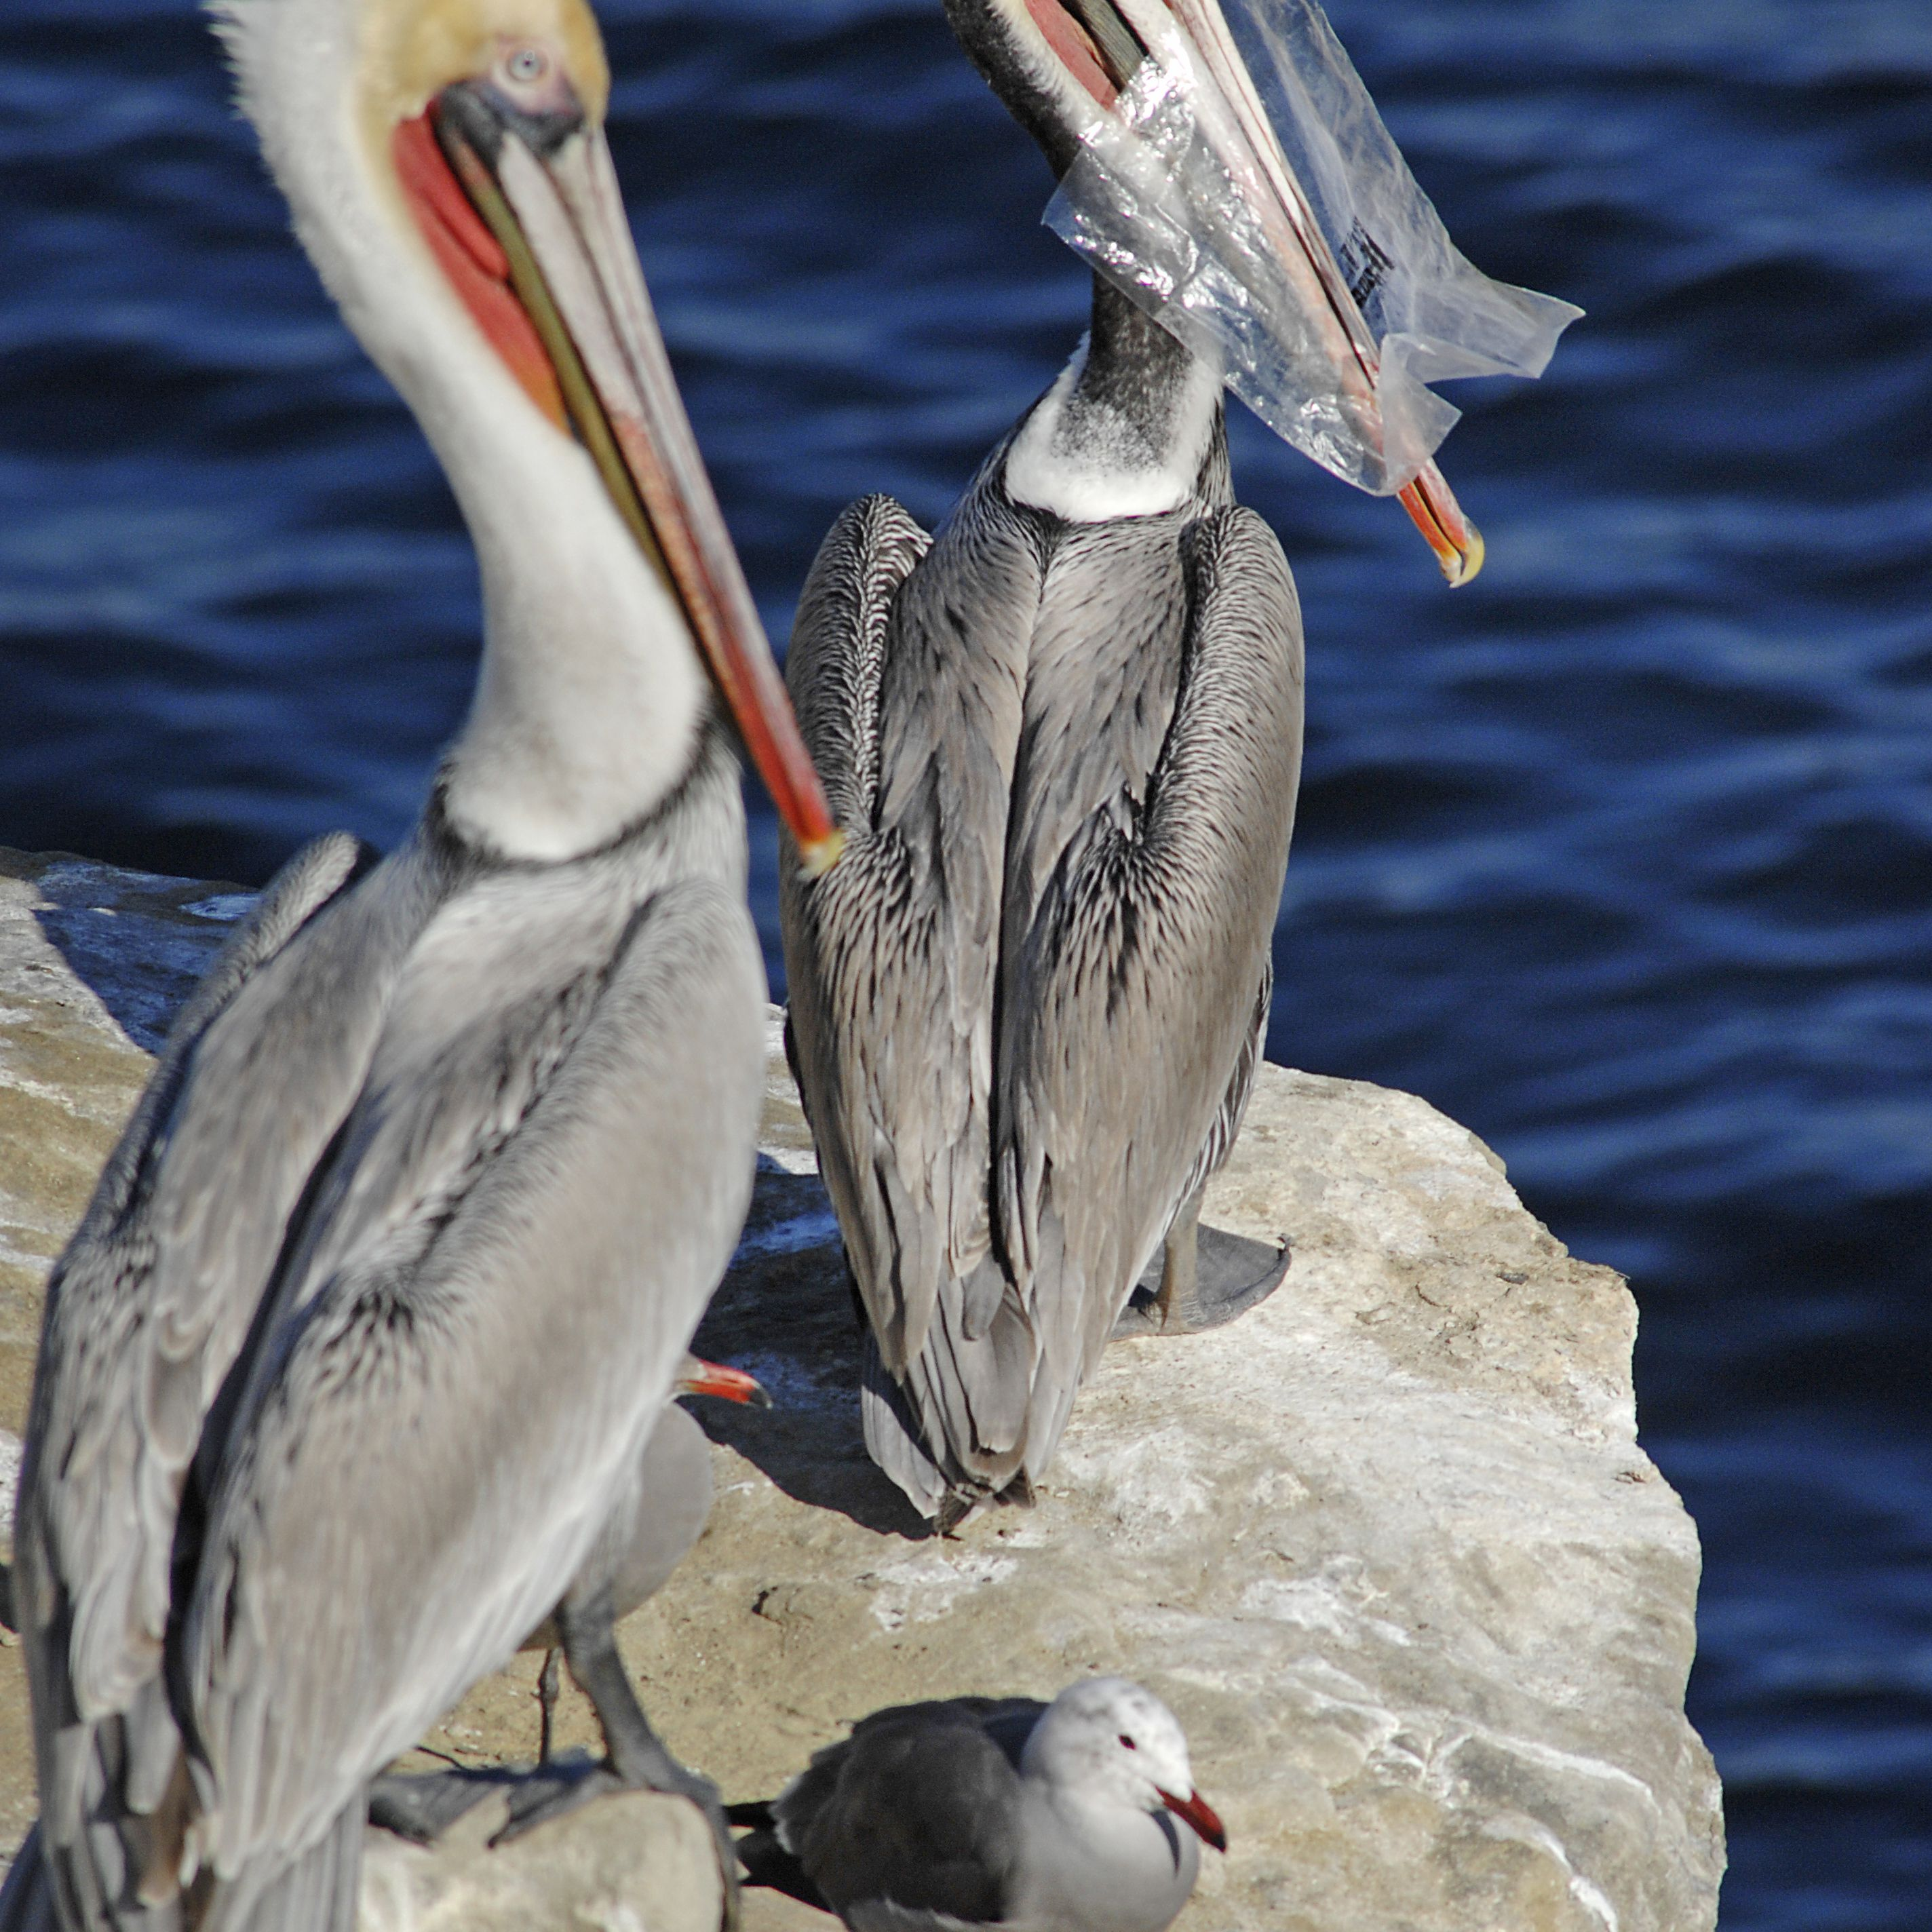 Pelican with plastic bag in its bill